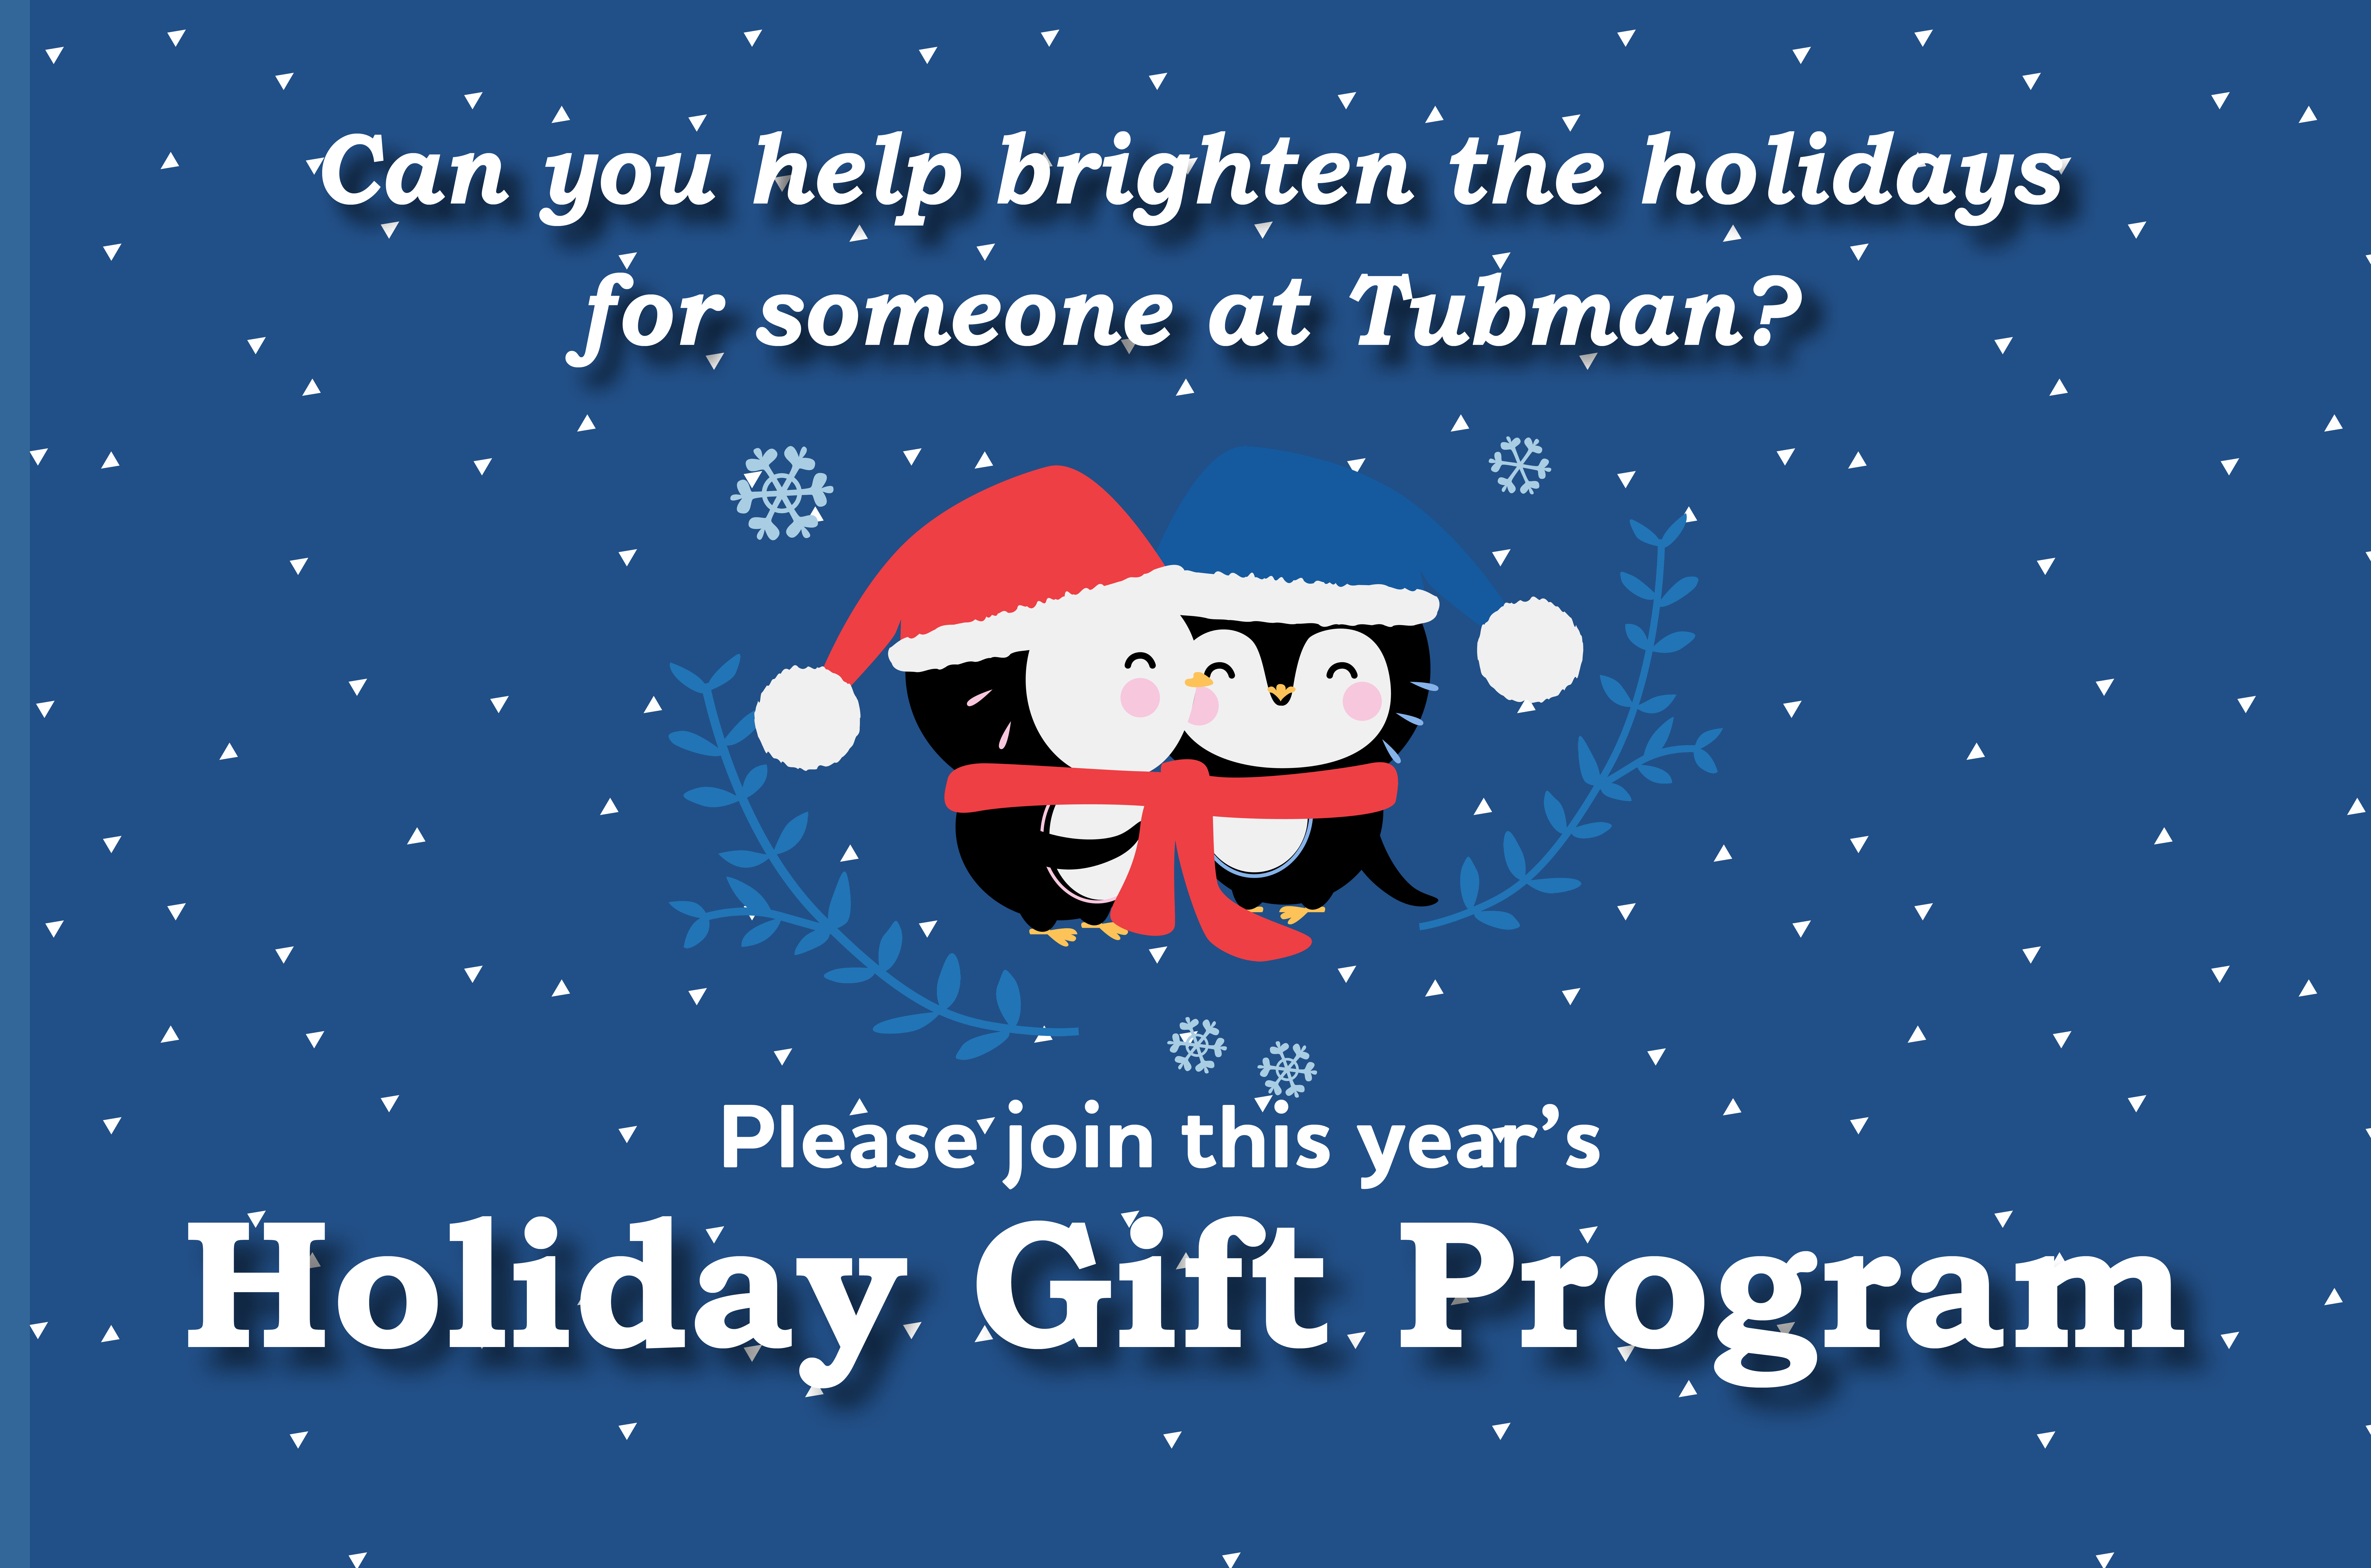 Join our annual Holiday Gift Program